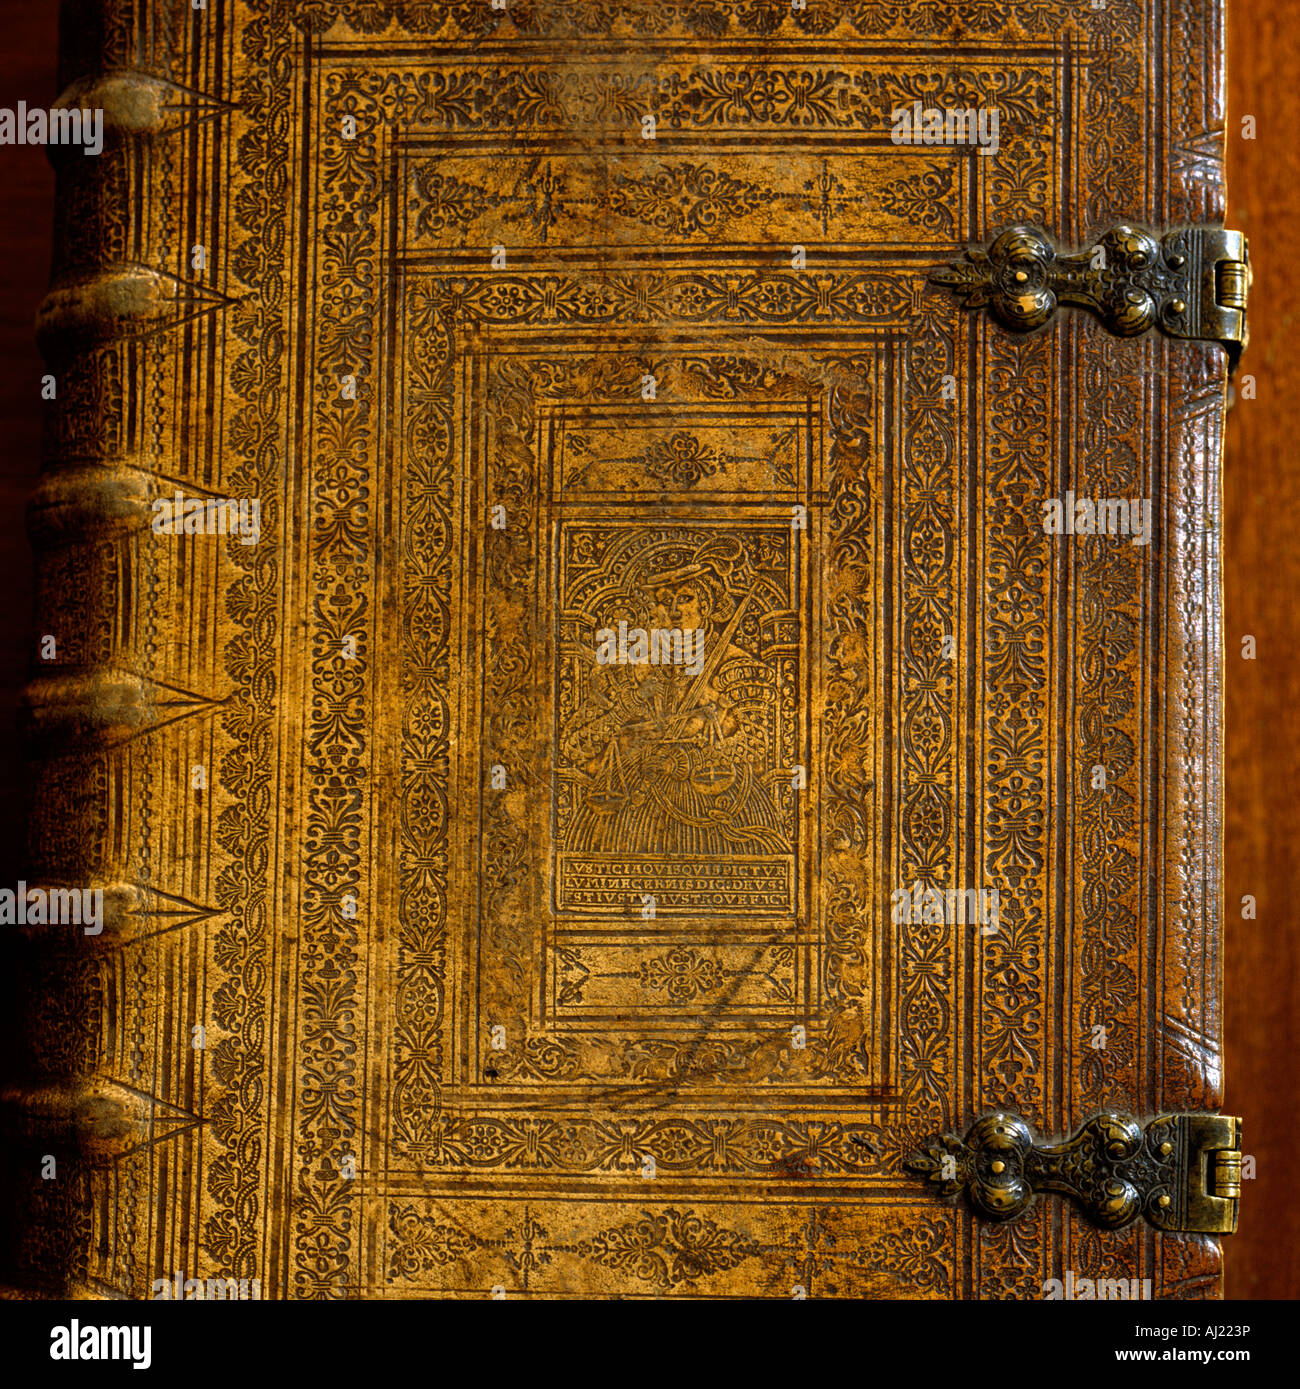 Ornate antique book cover with metal clasp - Stock Image